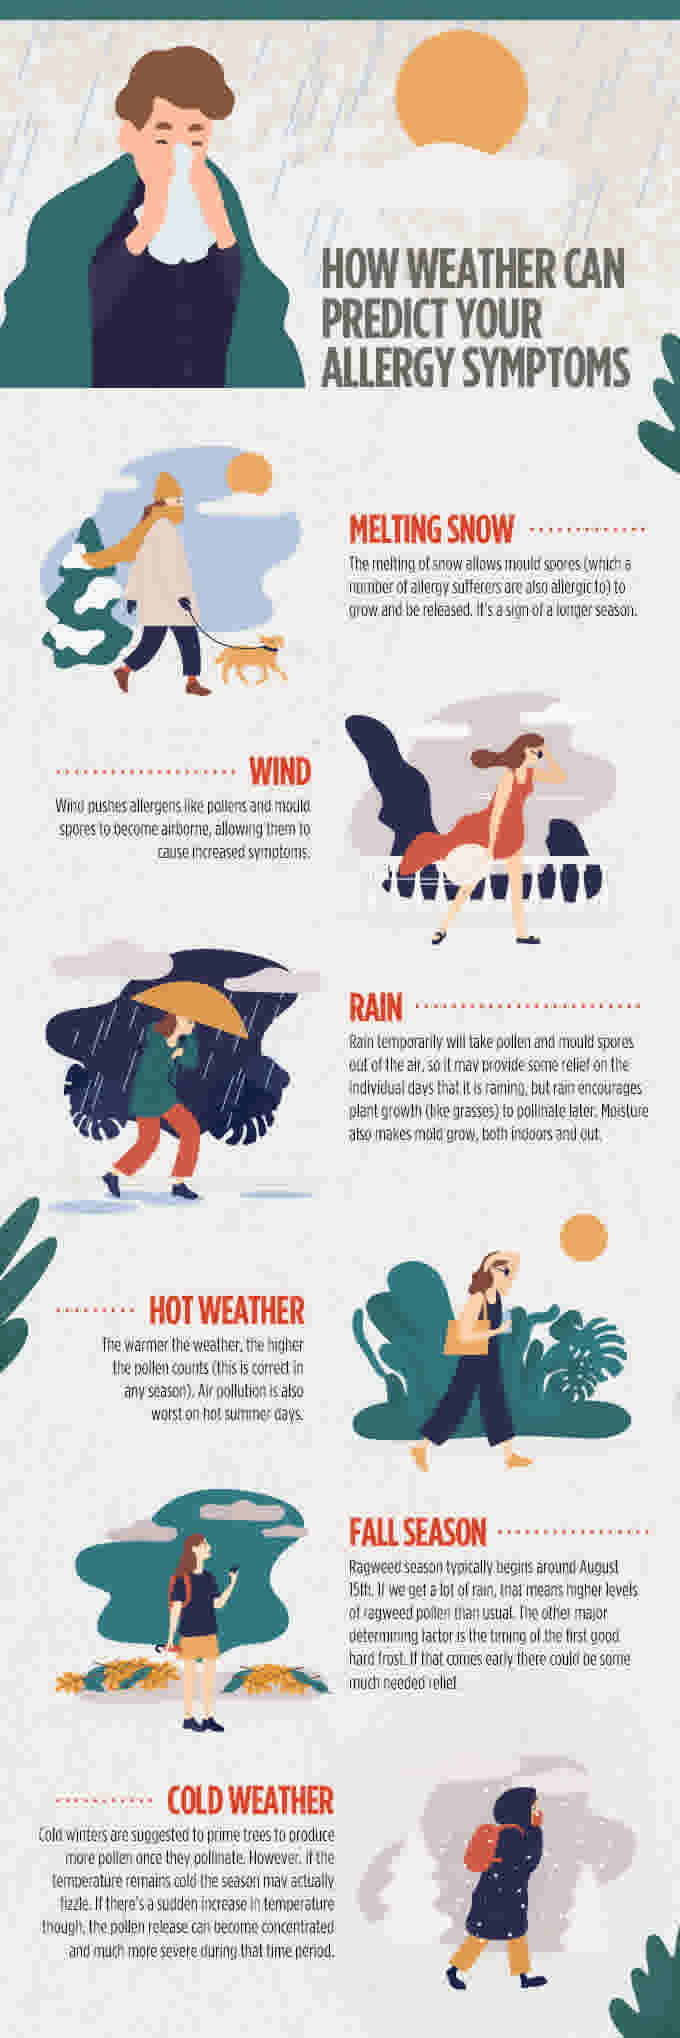 Flonase Infographic: How Weather Can Predict Your Allergy Symptoms